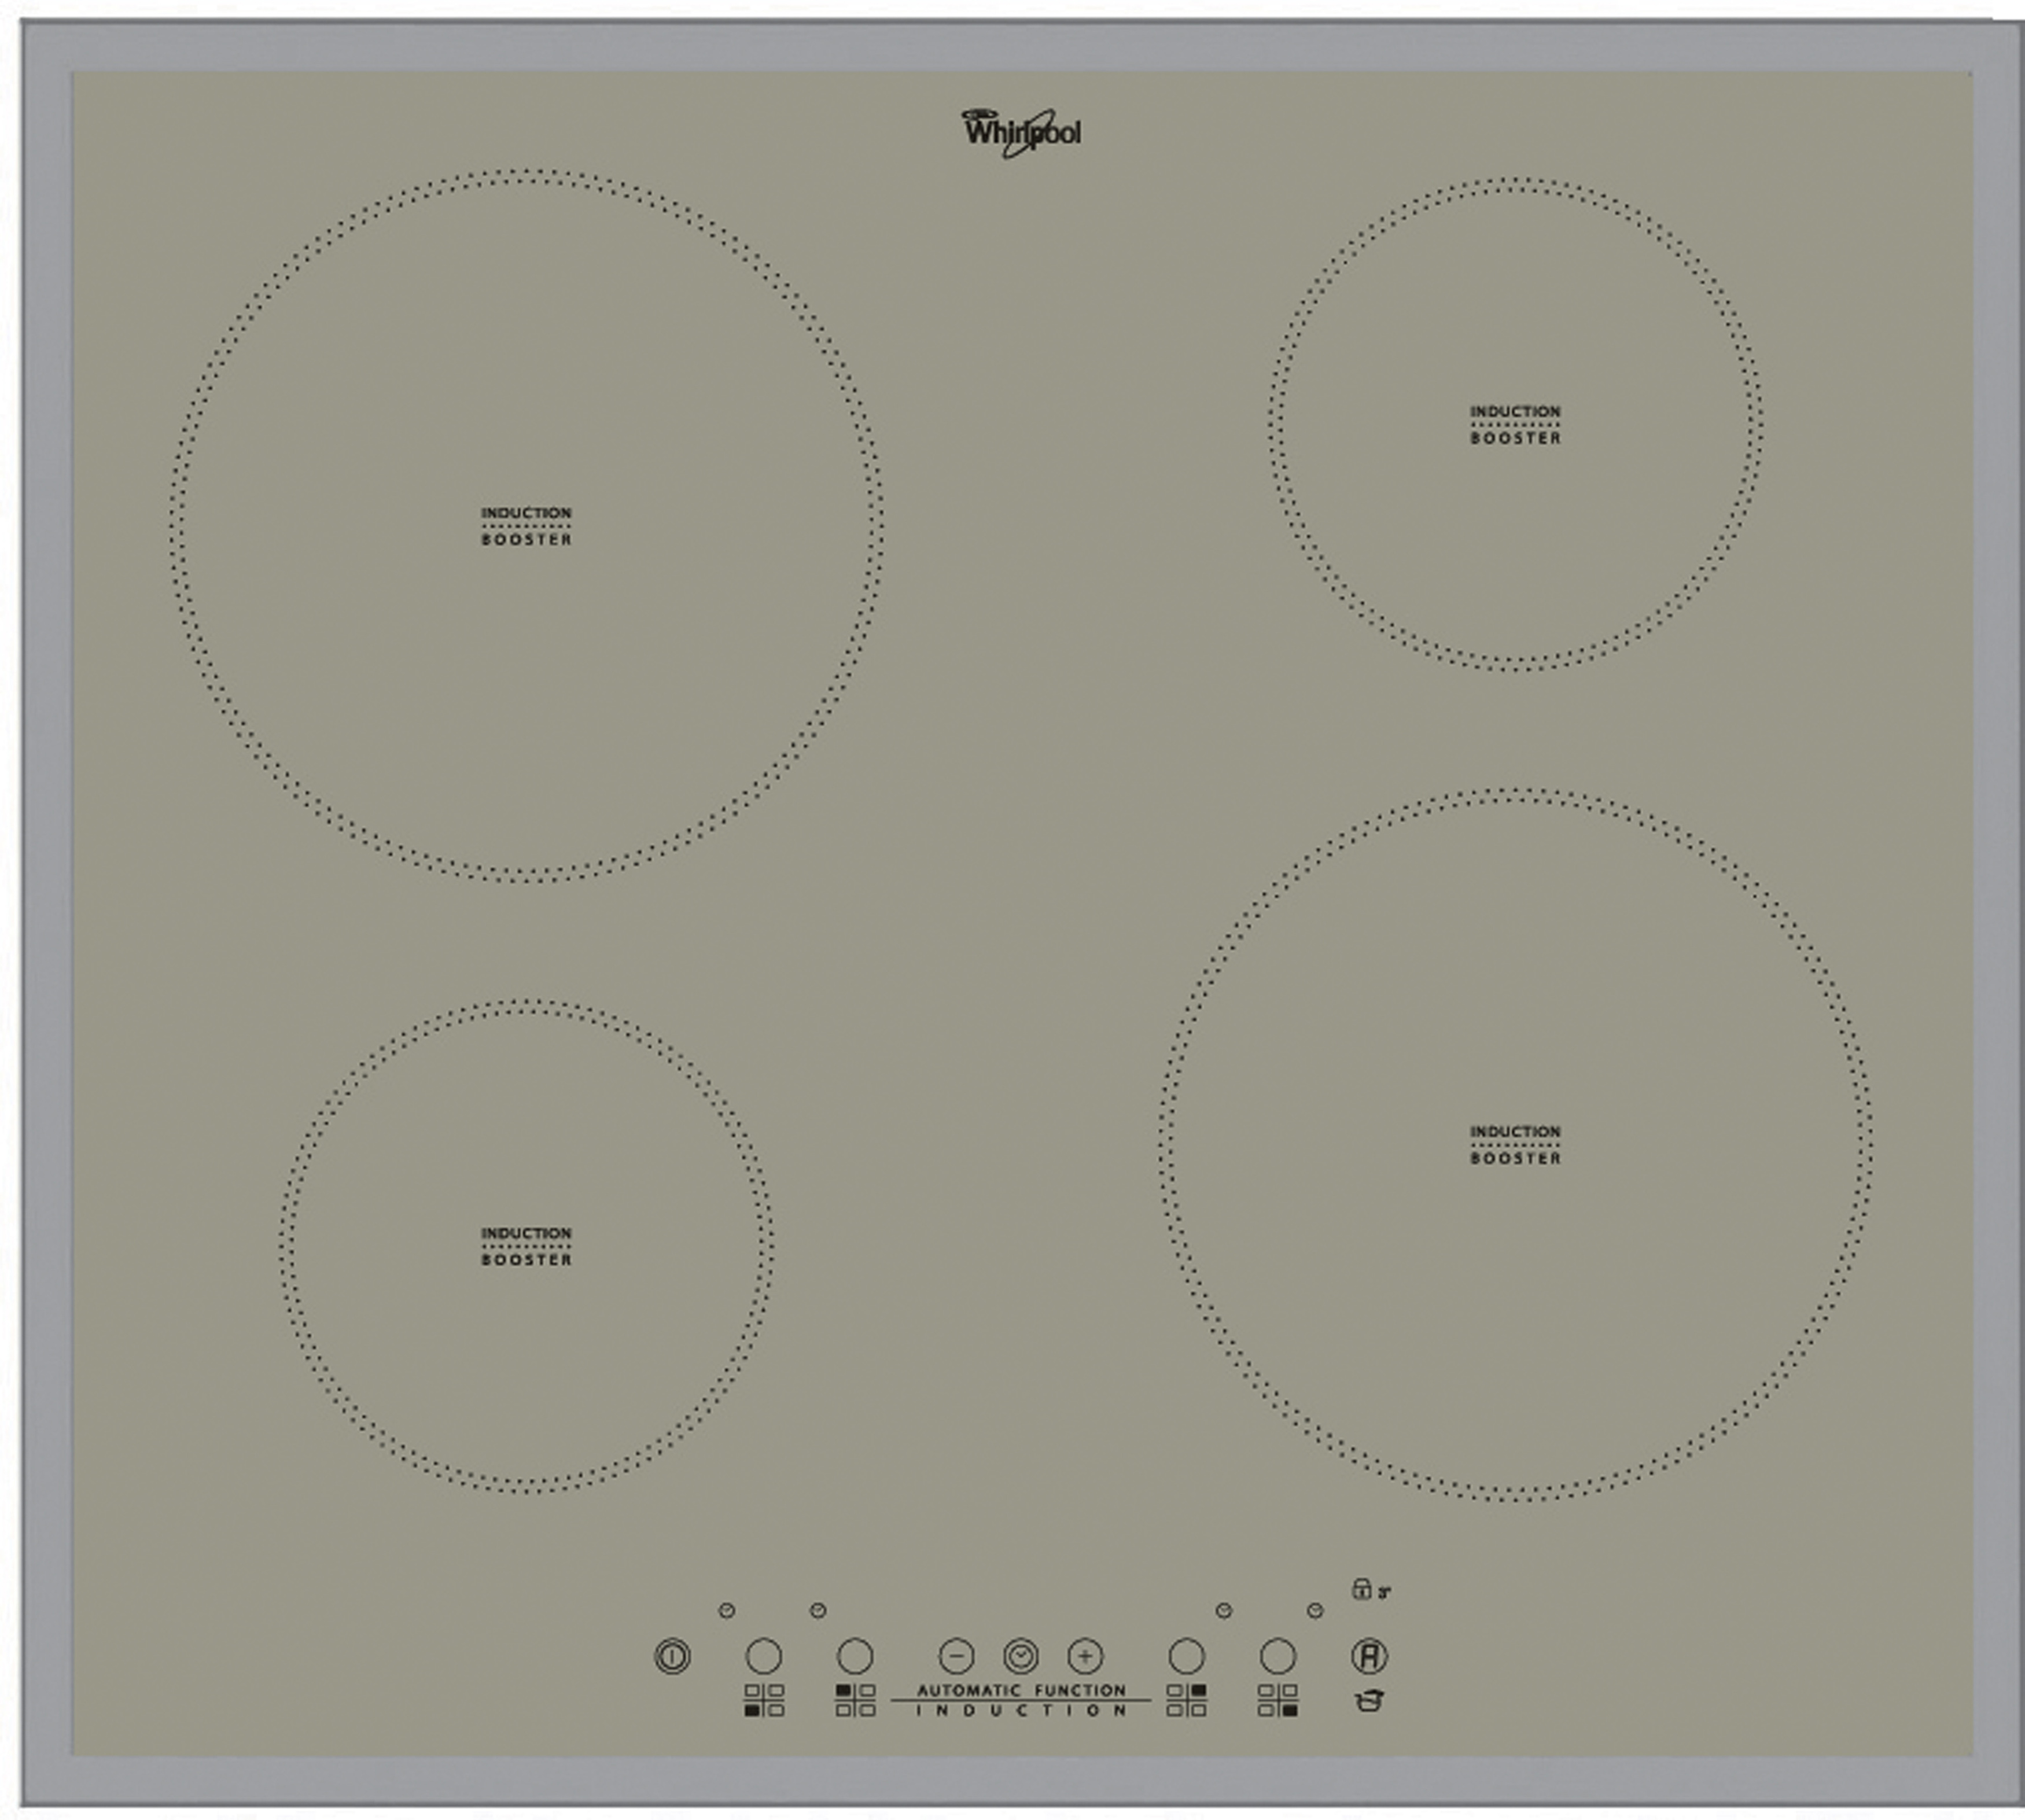 Whirlpool introduces silver finish to ACM 804/BA/S induction hob ...